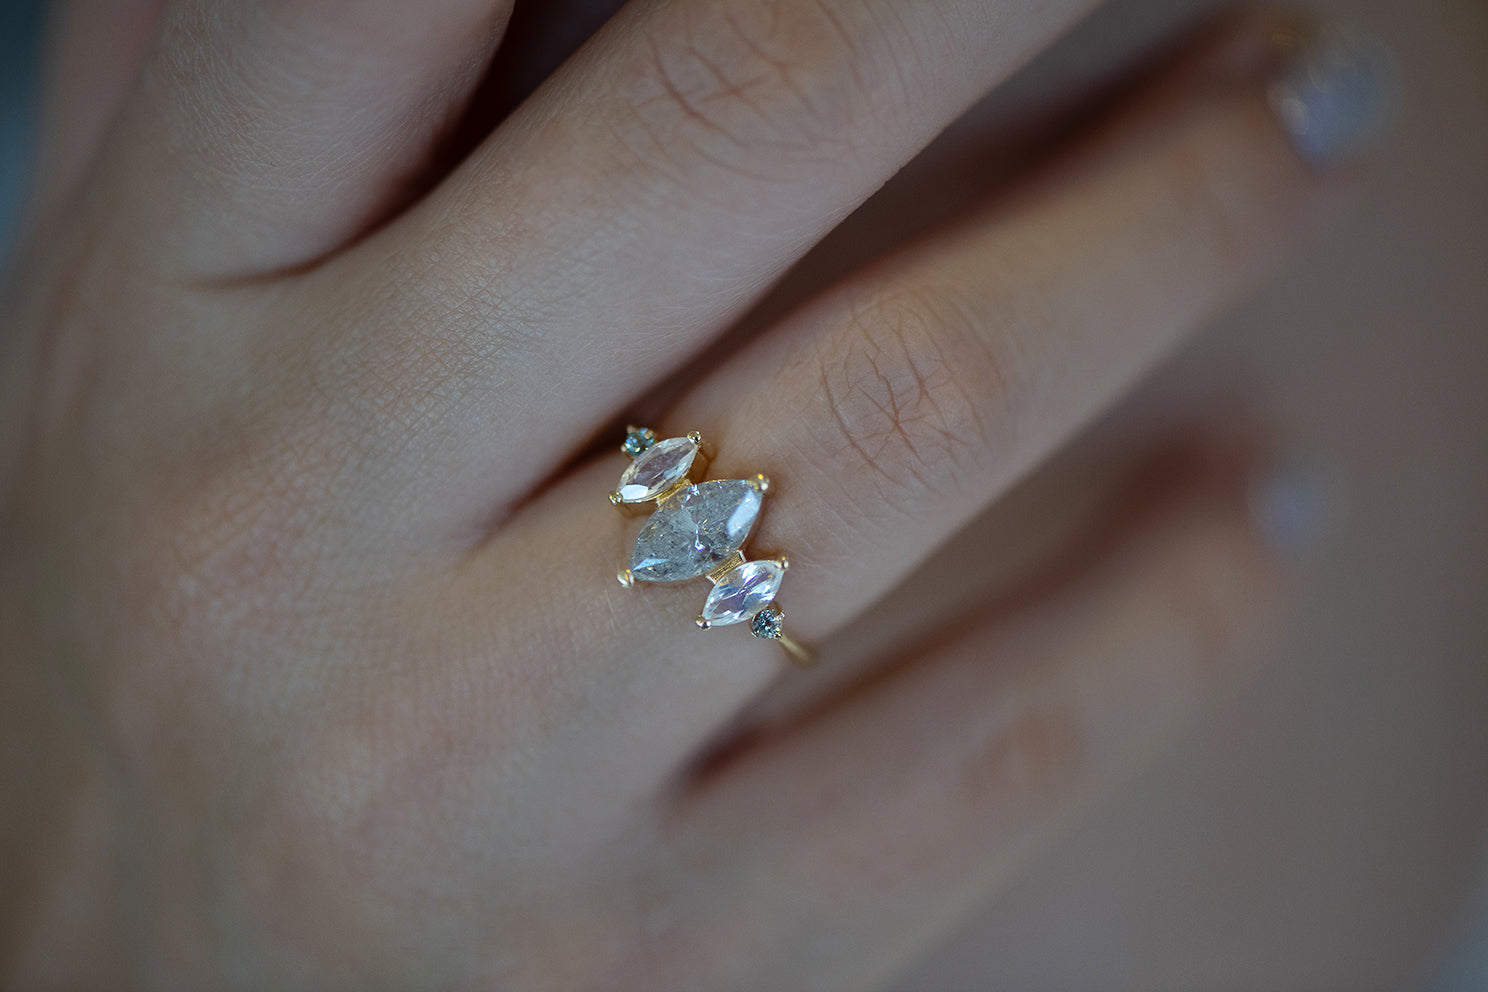 Salt and Pepper Marquise Diamond Ring in Shadow on Hand Up Close Shot